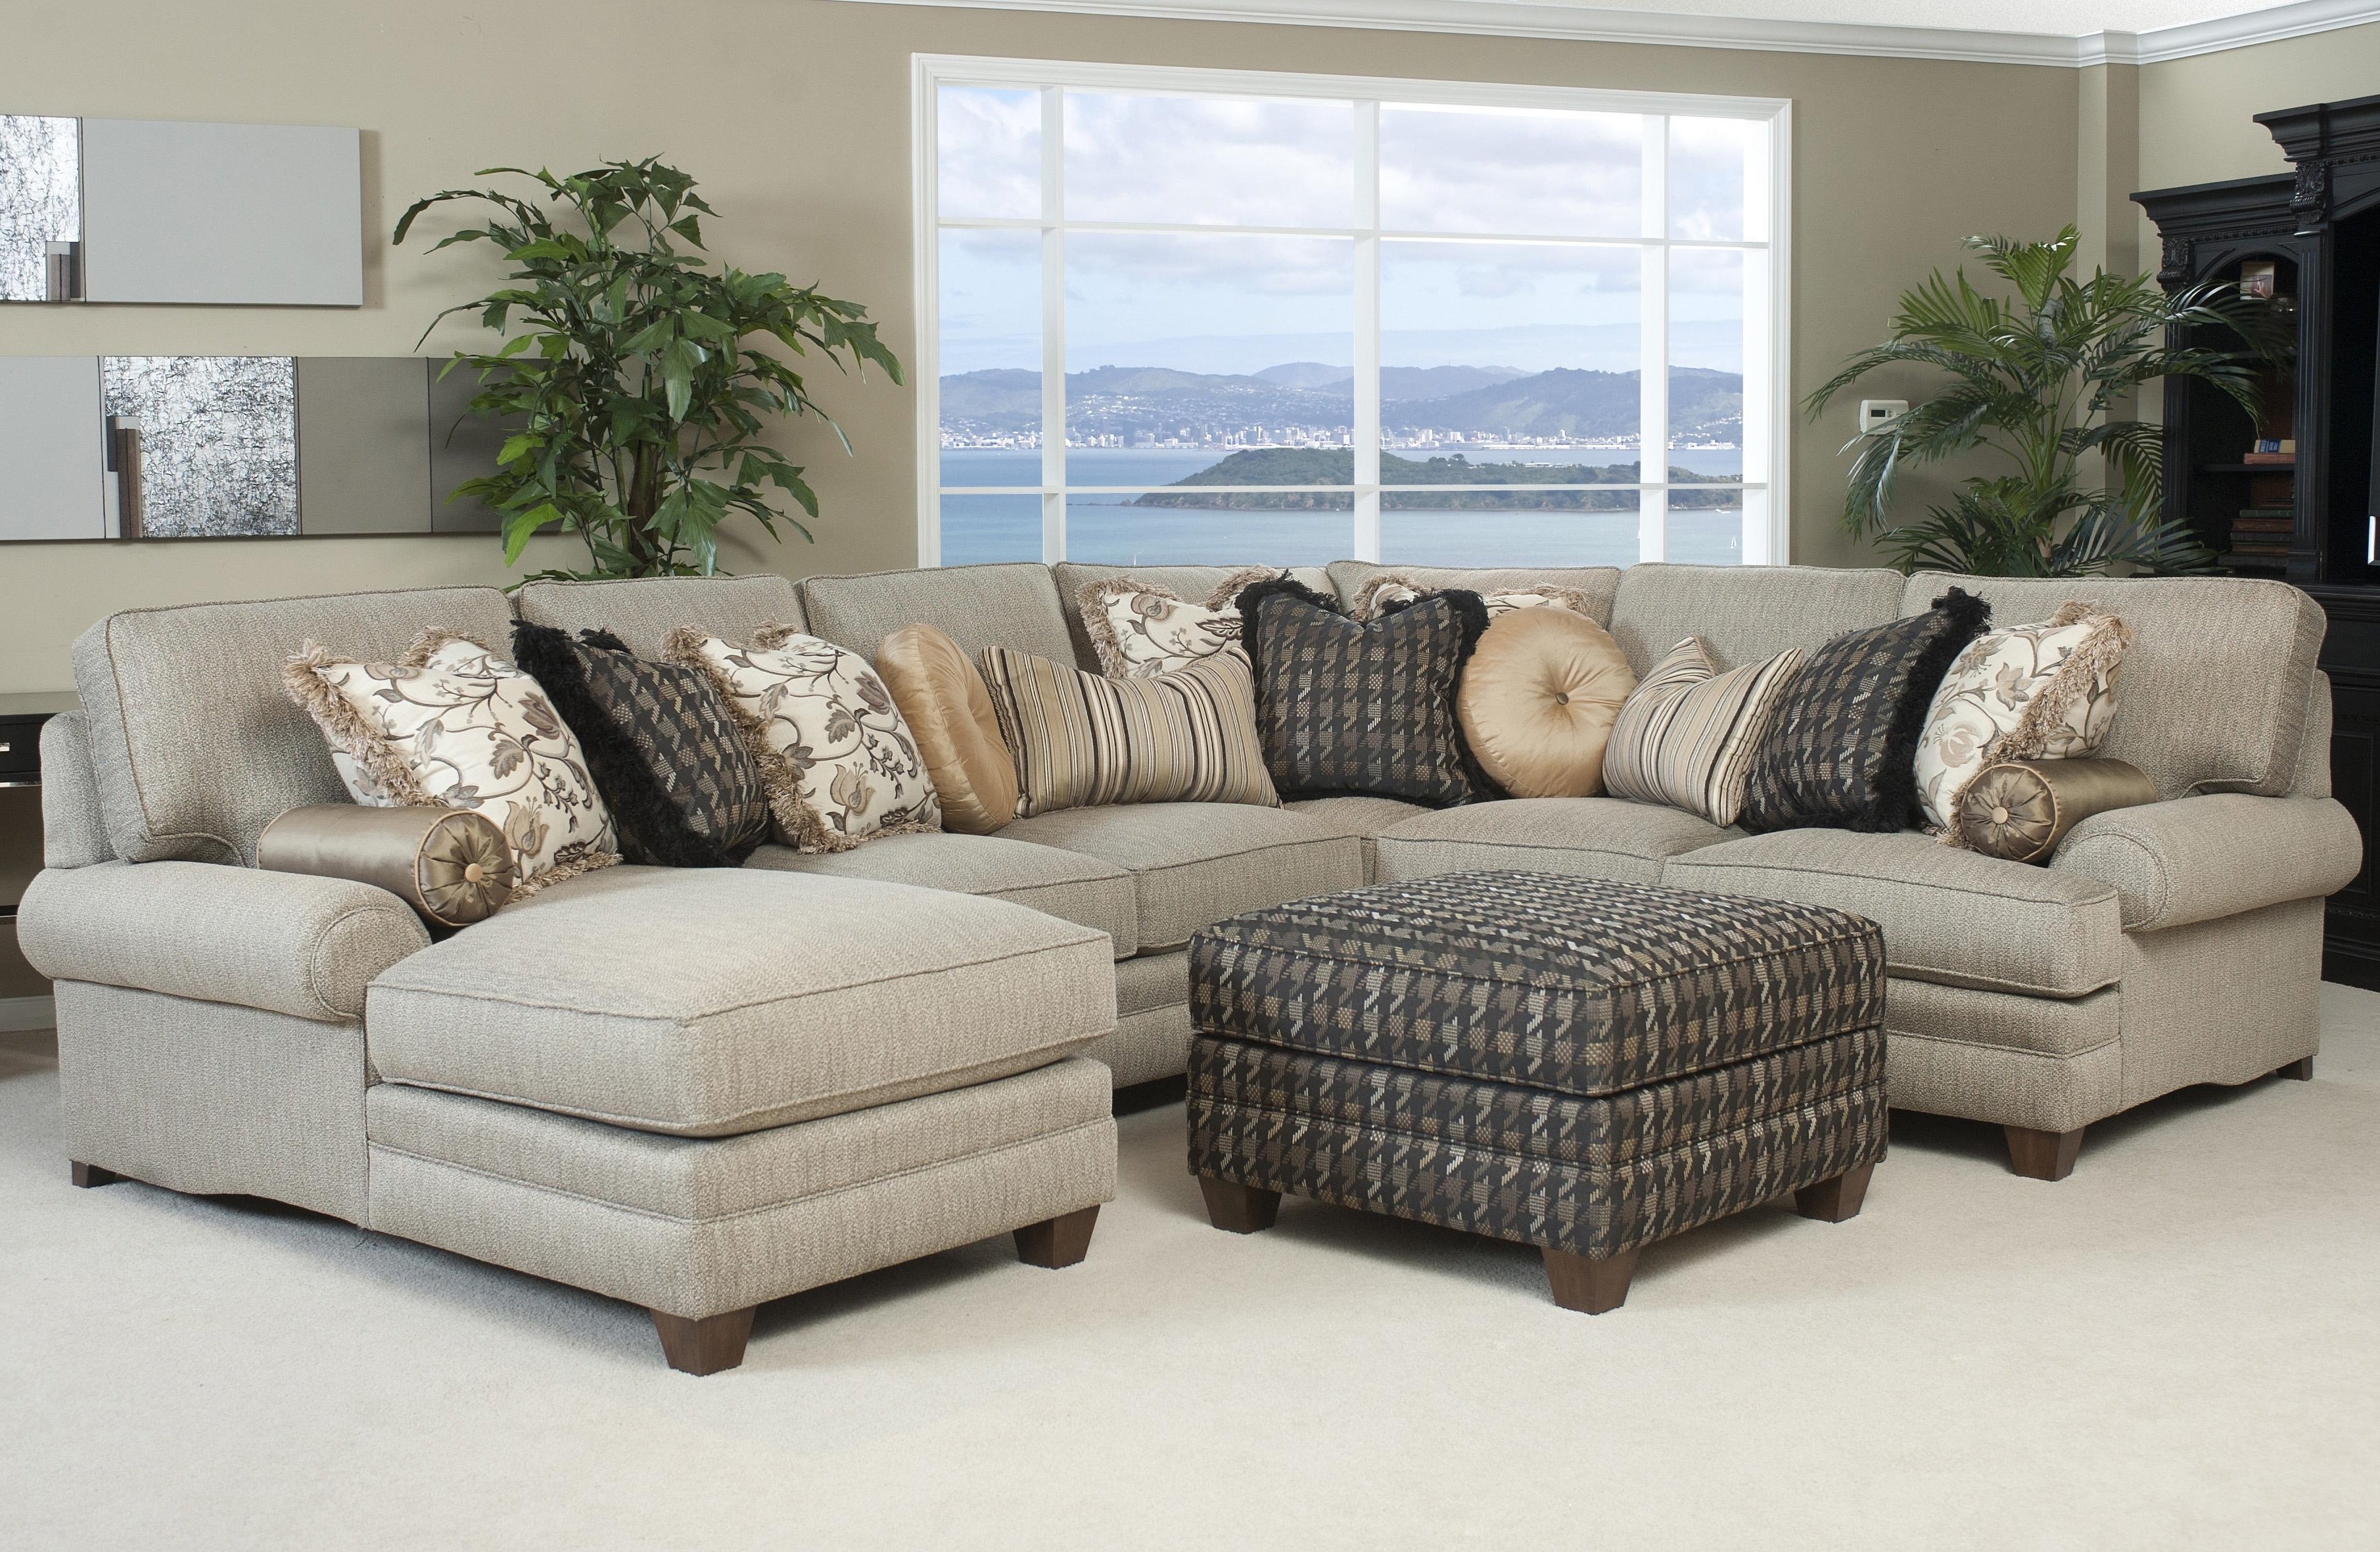 Sectional Sofas Within Trendy Sectional Sofa Design: Best Of The Best Traditional Sectional (View 10 of 15)